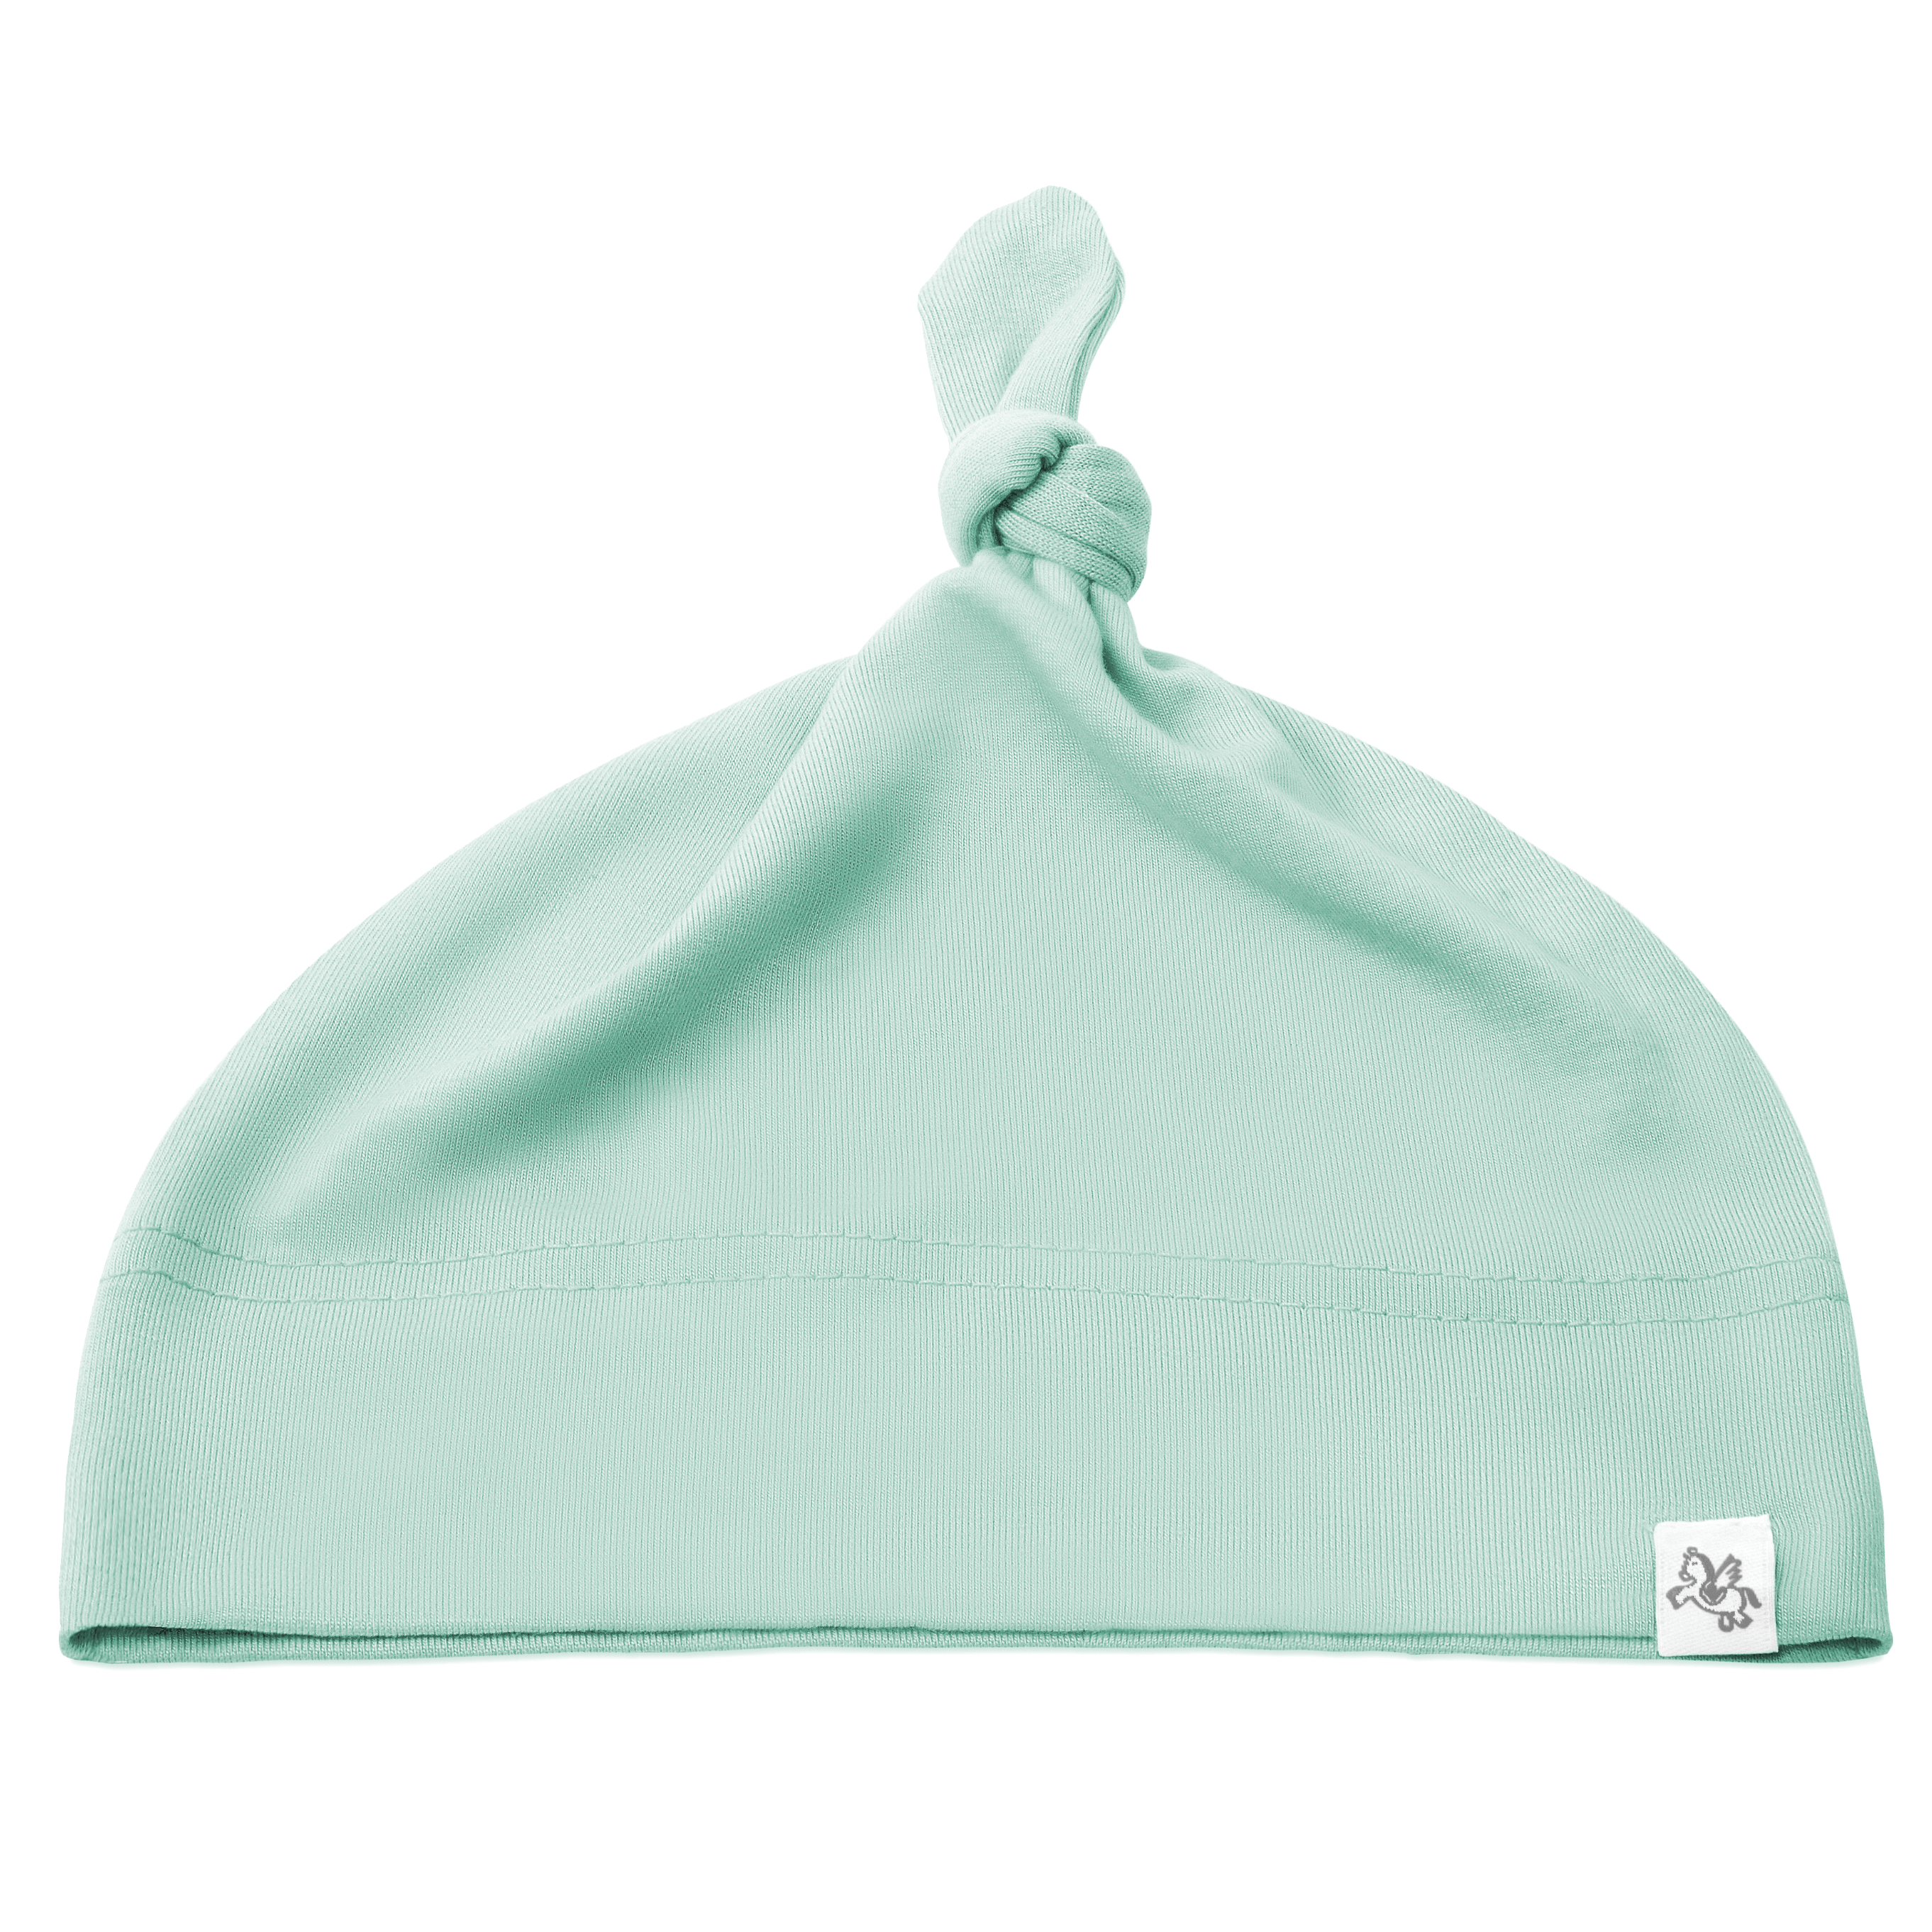 Knotted Infant Cap - Aloe, It's Me - Project Nursery